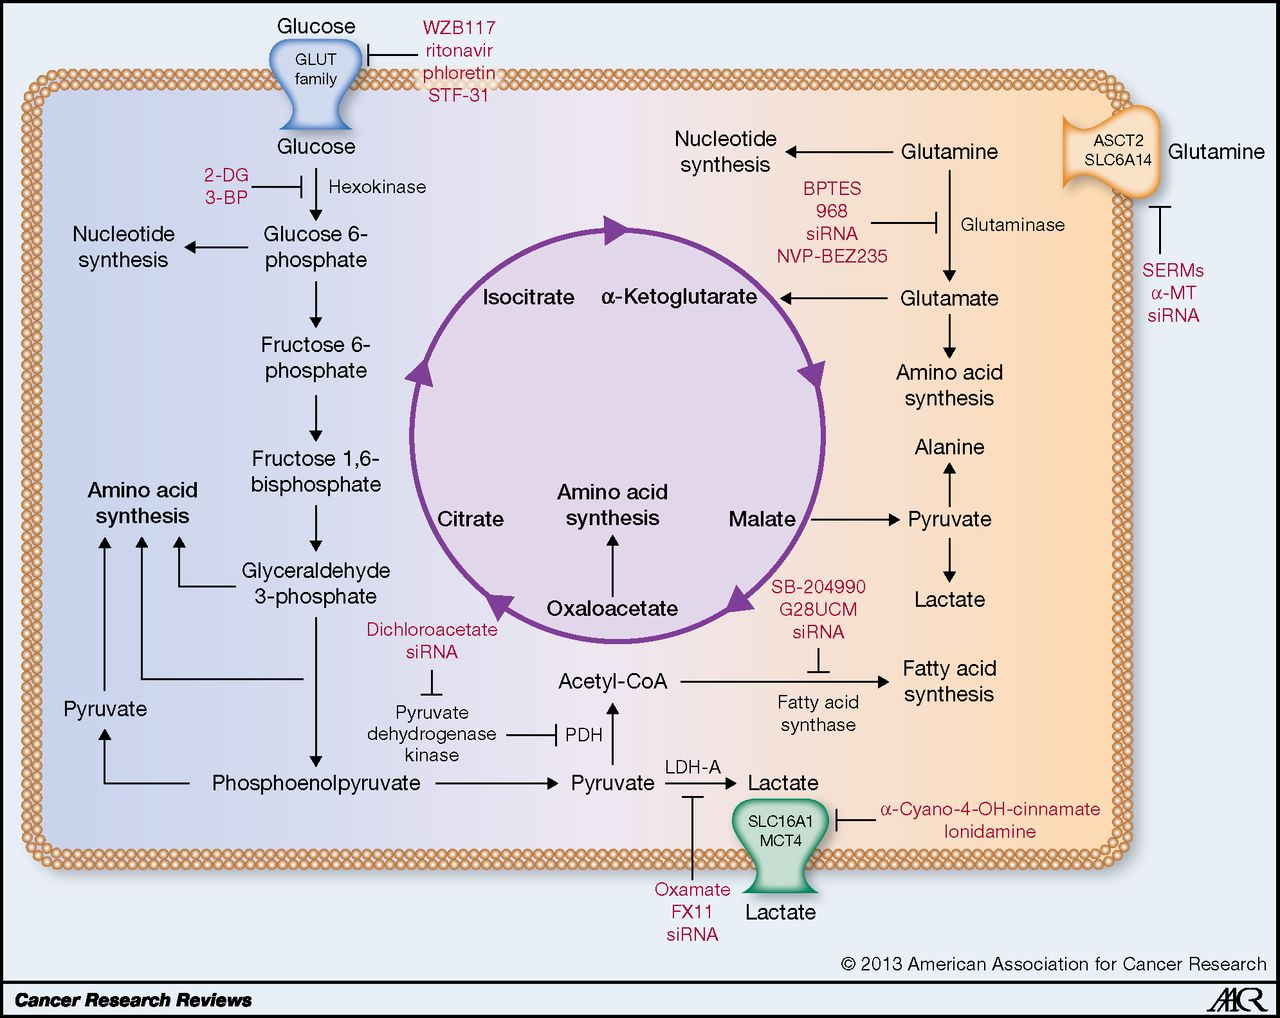 Glucose metabolism in cancer